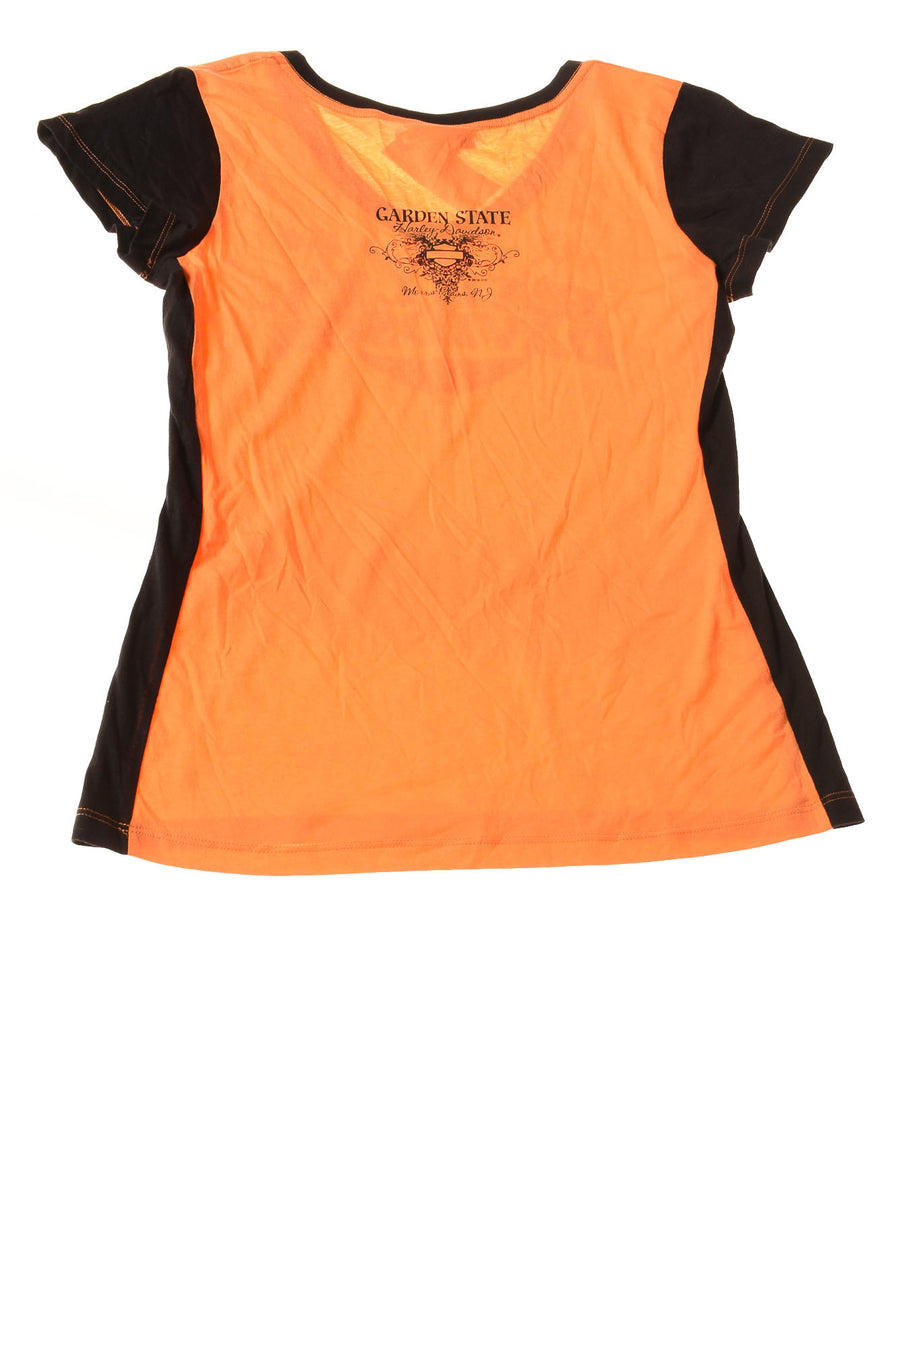 NEW Harley Davidson Women's Top Medium Orange & Black